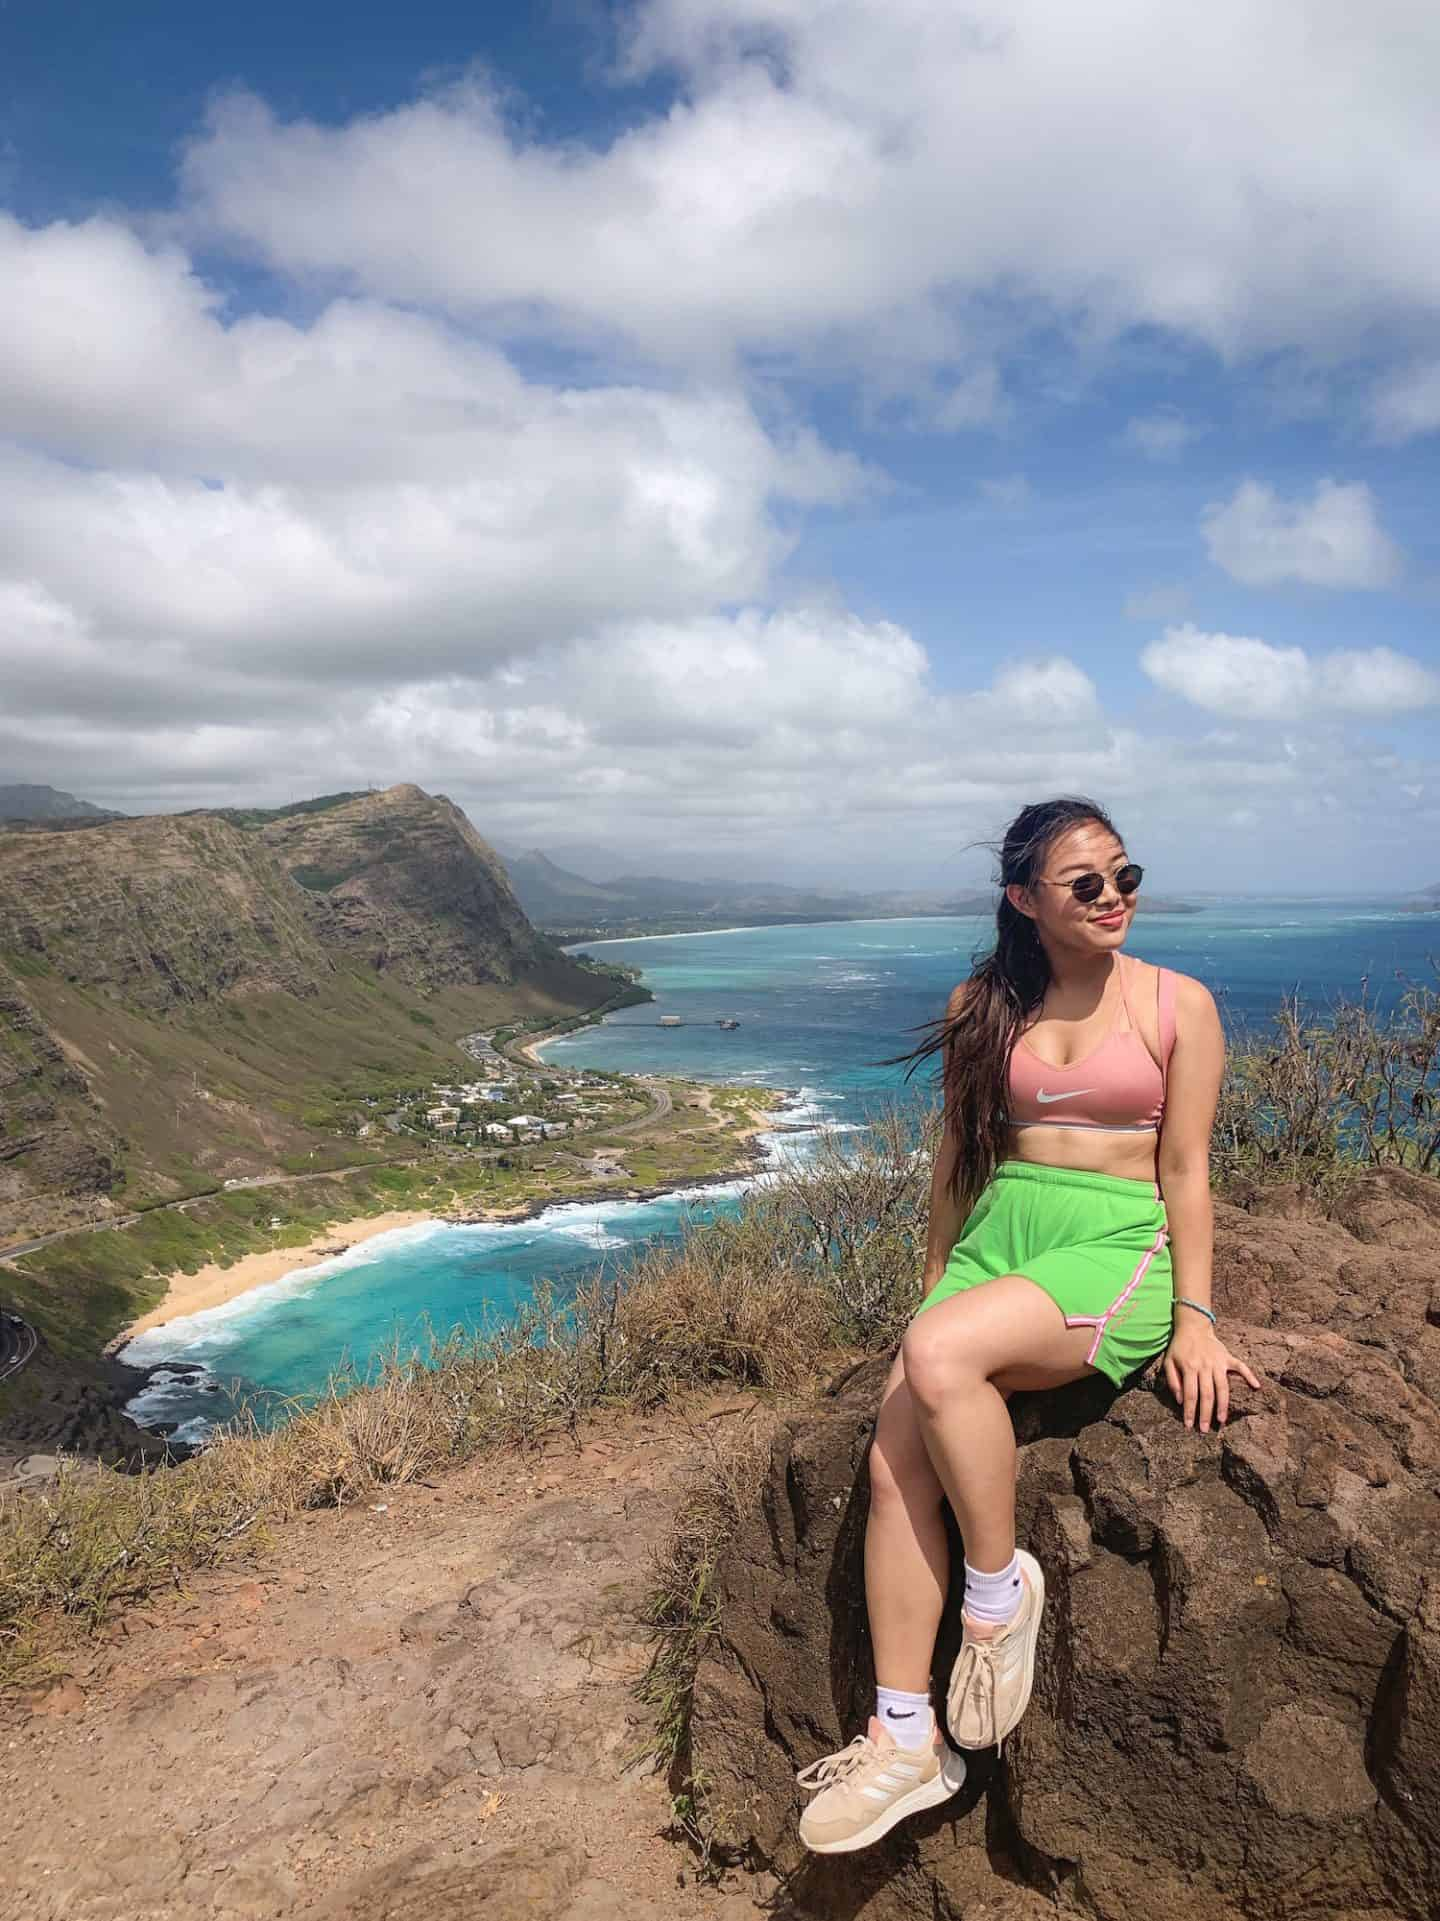 The Makapu'u Lighthouse Trail hike is one of the best hikes to add to your Oahu itinerary